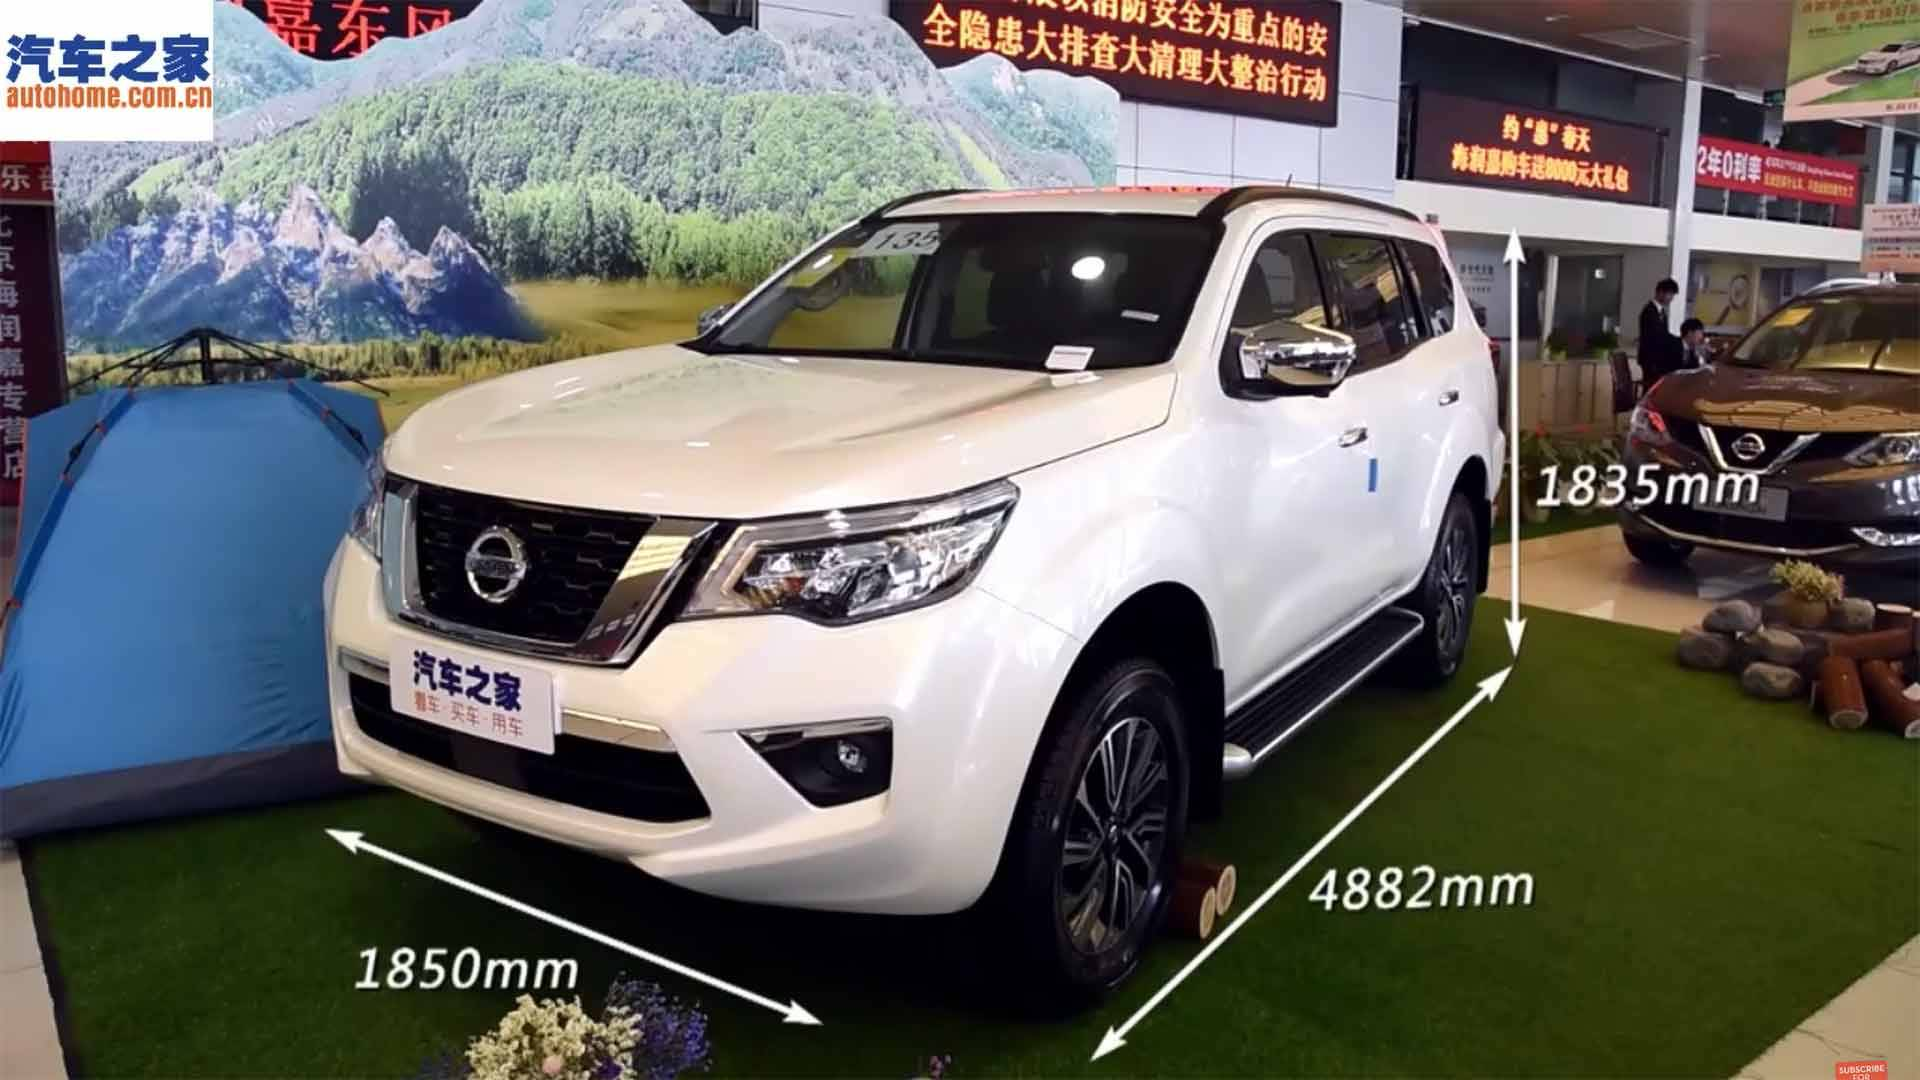 models concept suv xmotion nissan hd wallpaper cars top n images